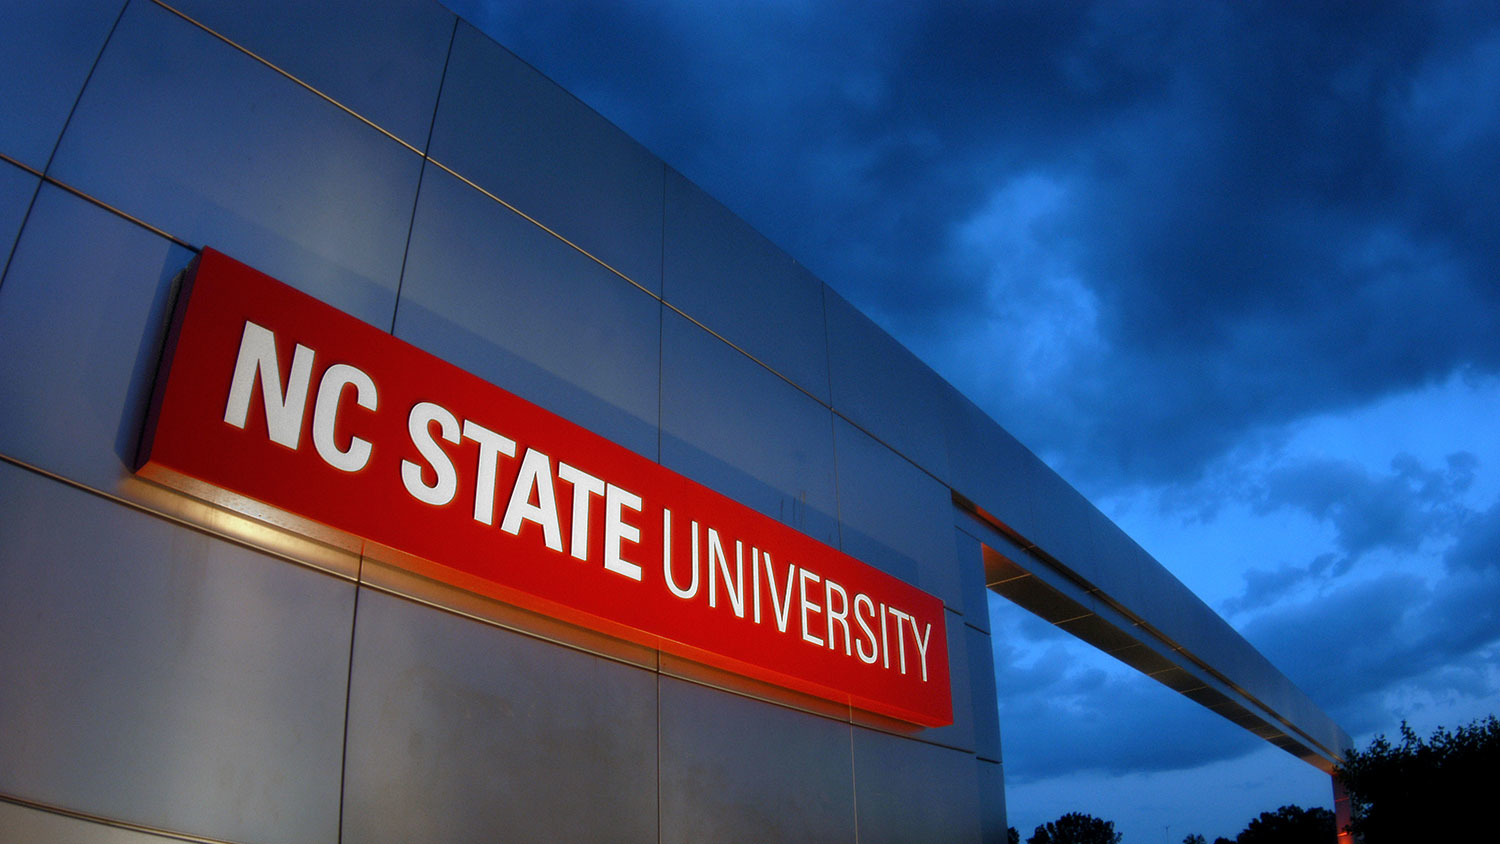 NC State gateway at sunset